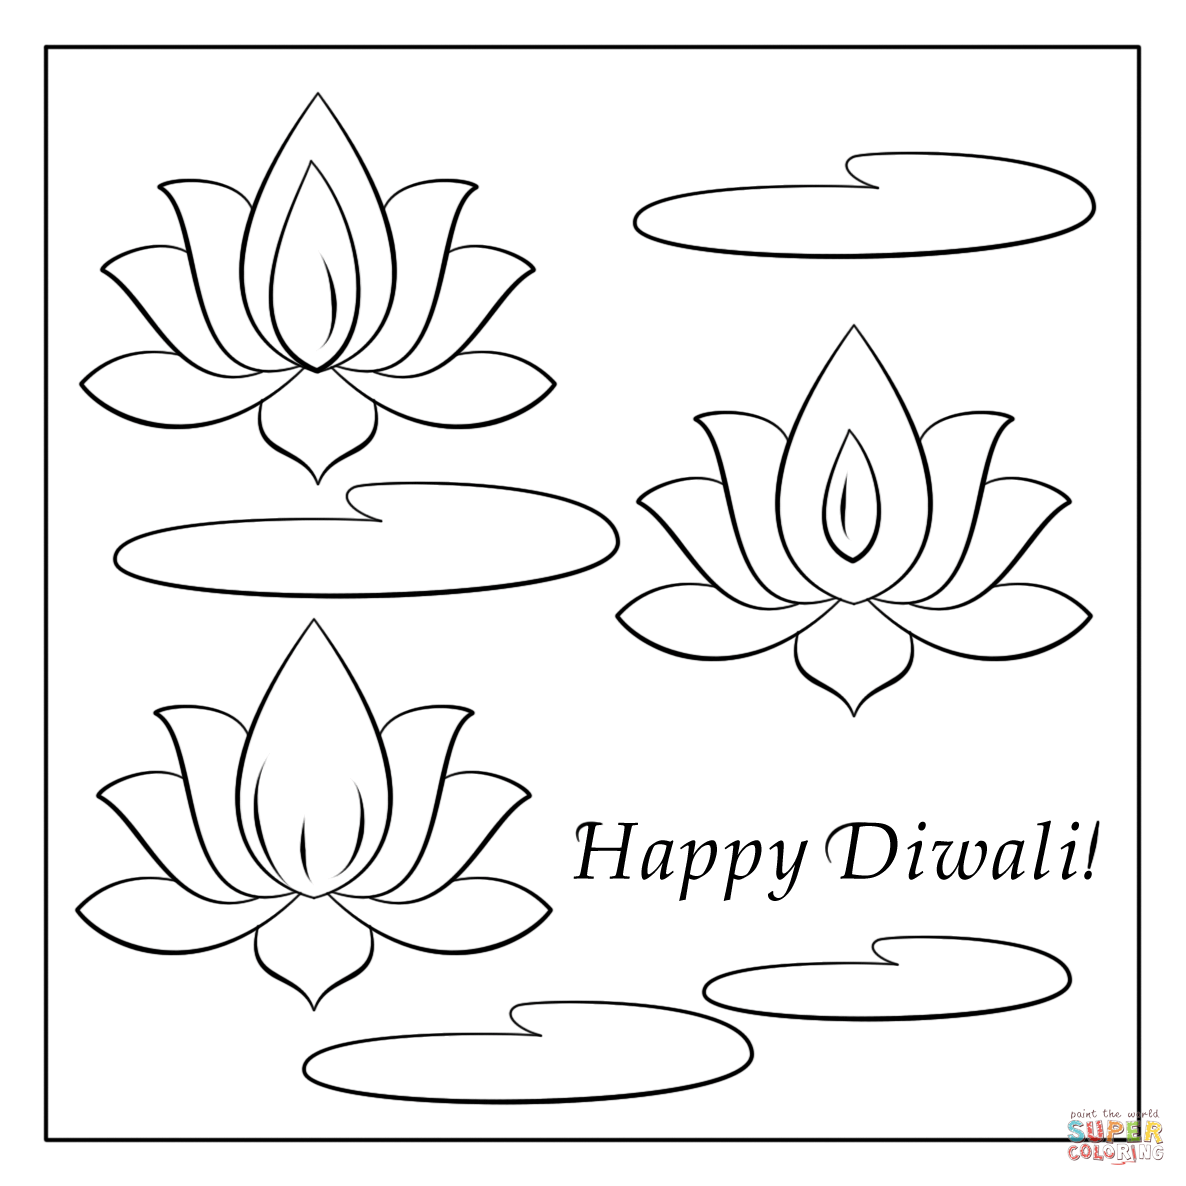 diwali cards to colour happy diwali coloring pages at getcoloringscom free diwali colour to cards